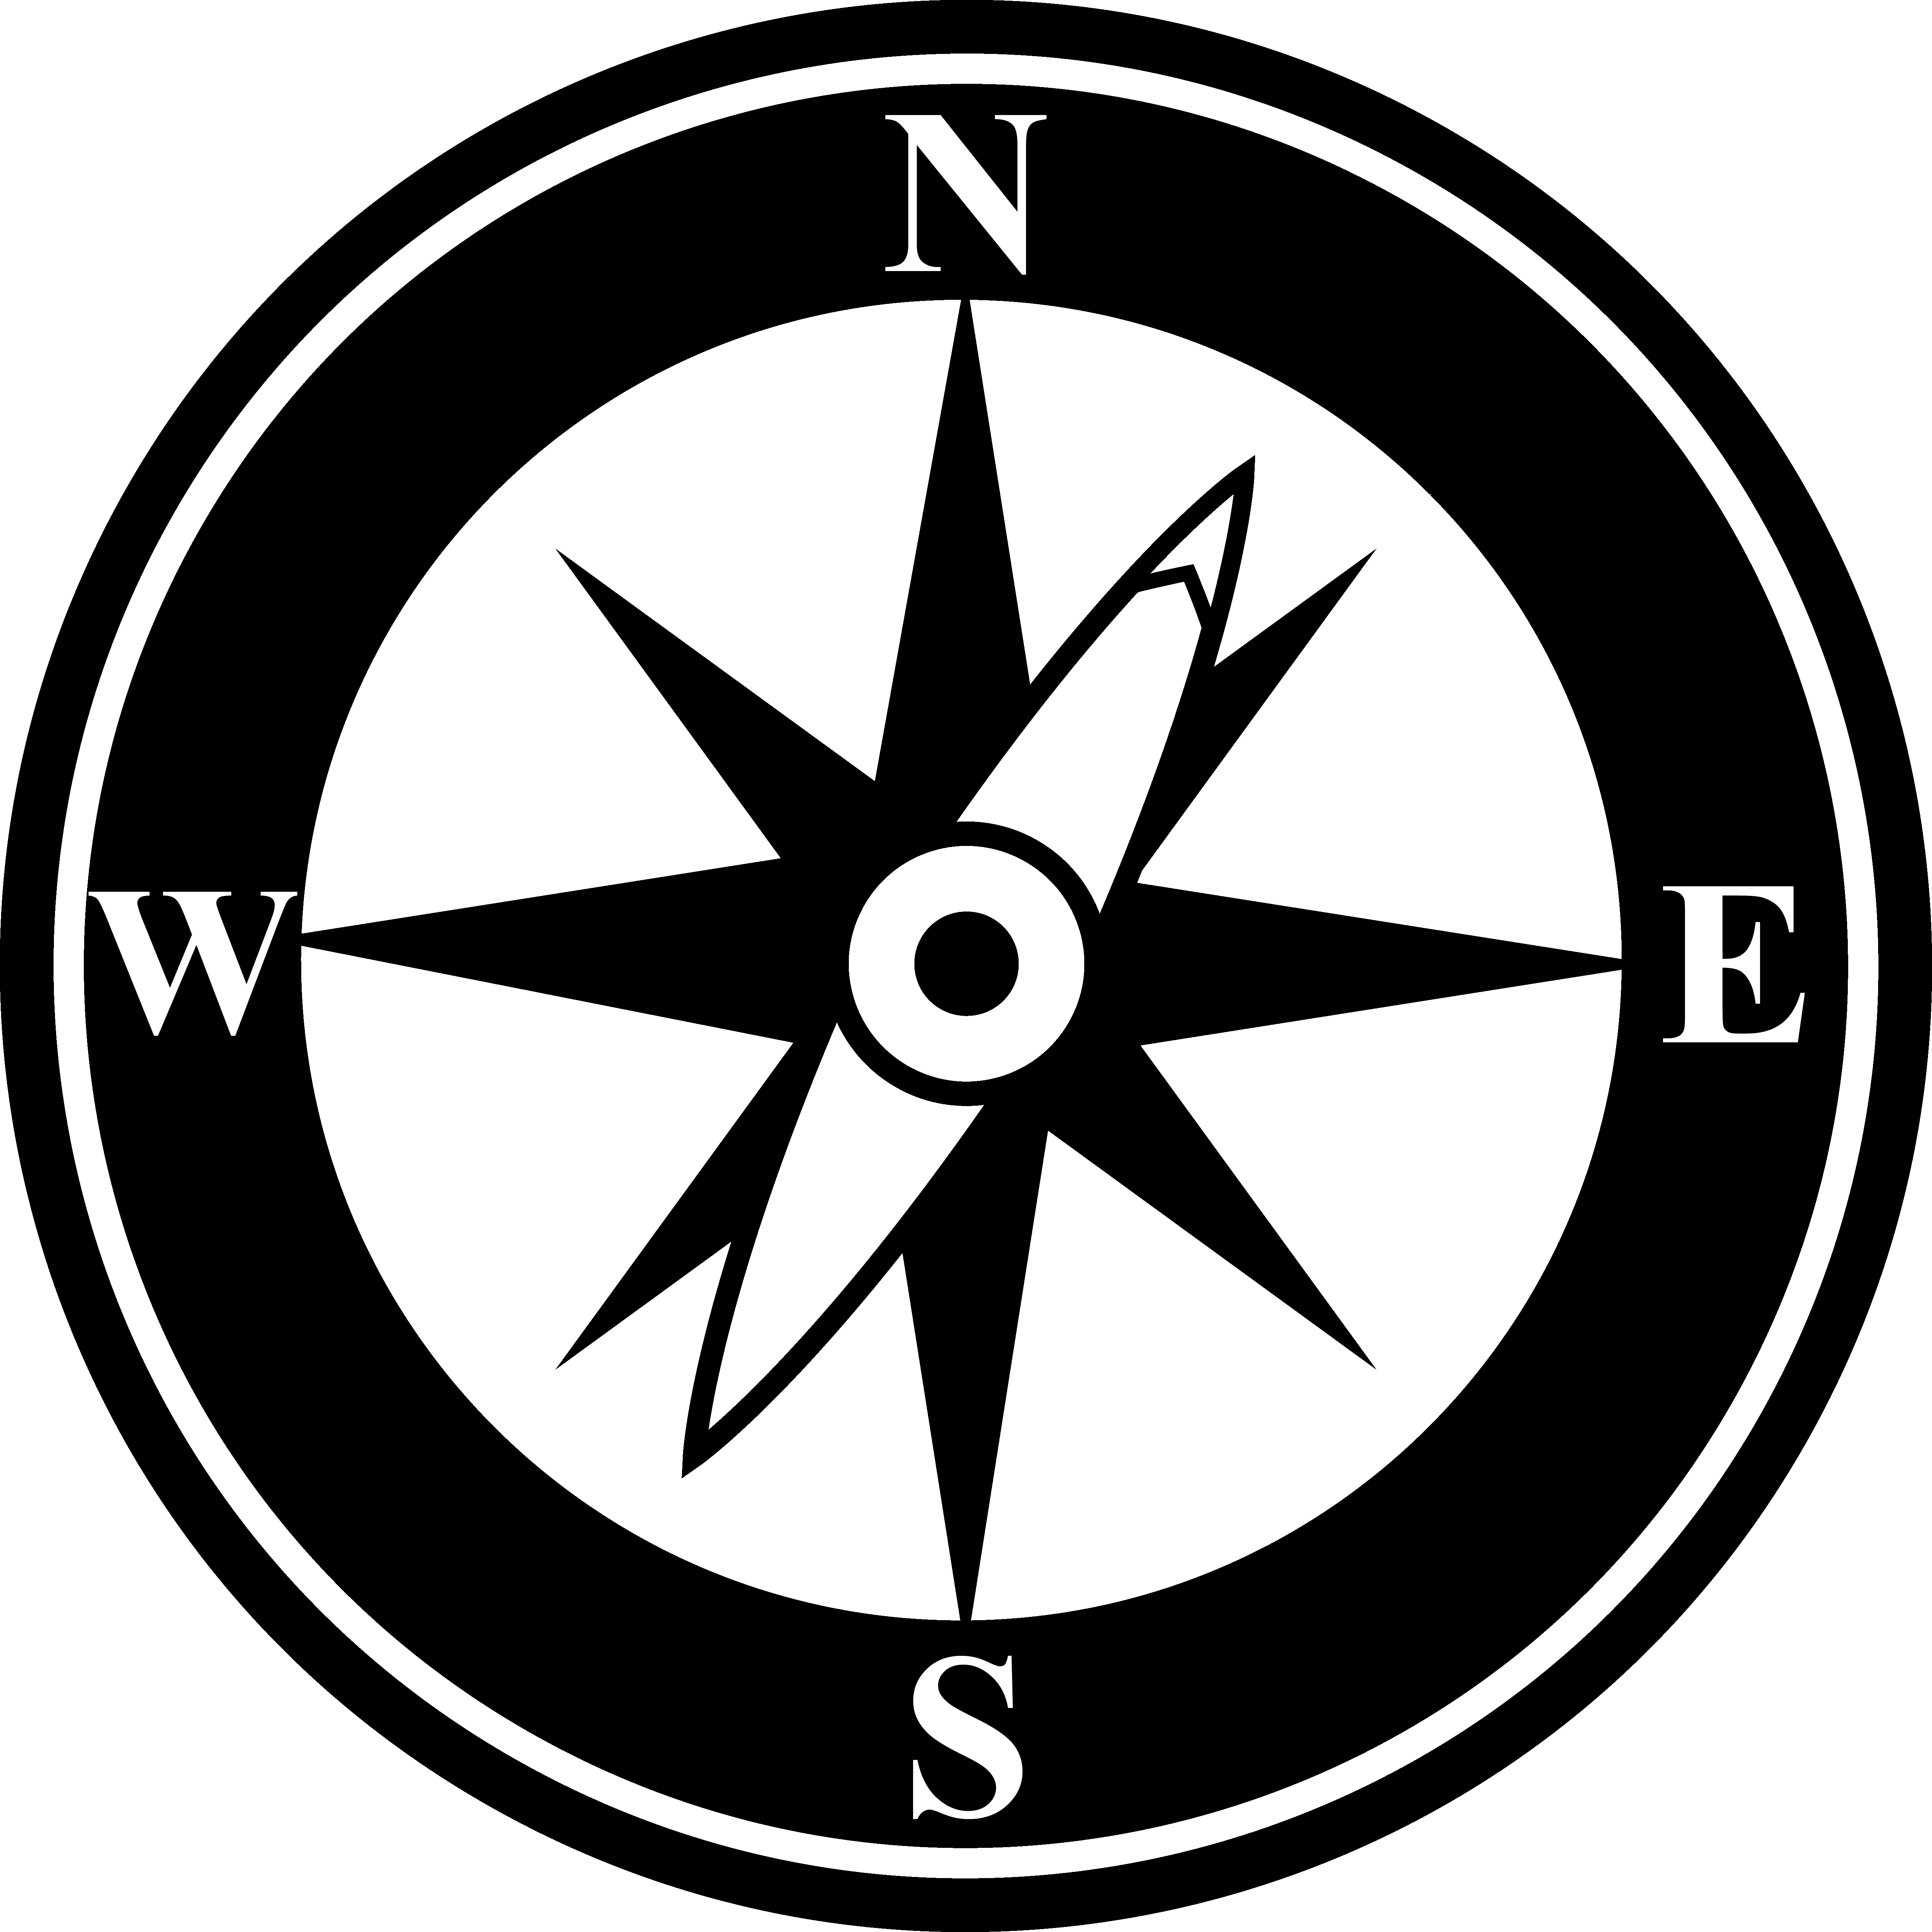 picture download Compass clipart. Clip art free images